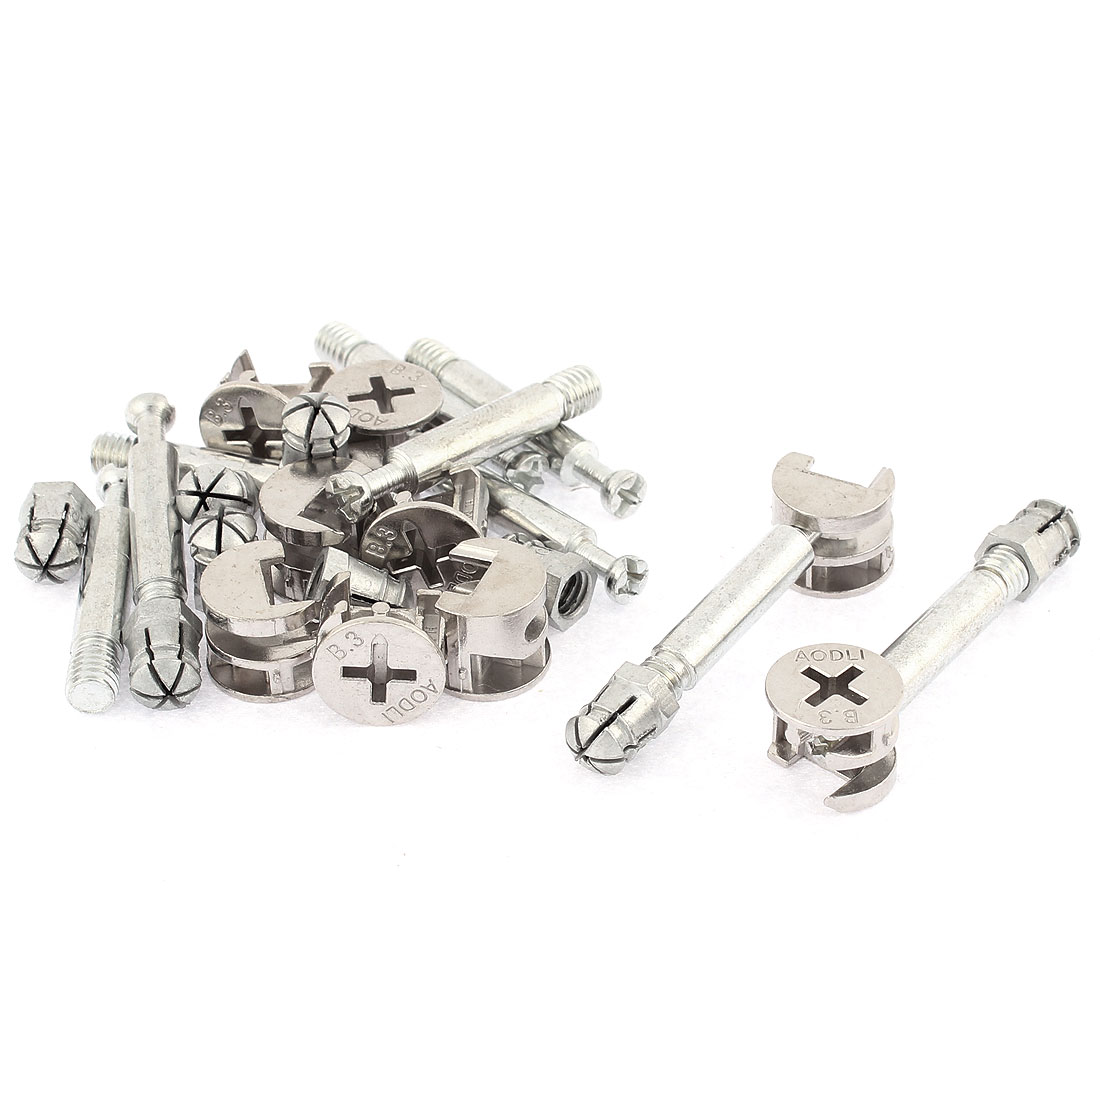 Furniture Cabinet Fixing Screw Locking Connecting Cam Bolt Nut Fitting 9Sets